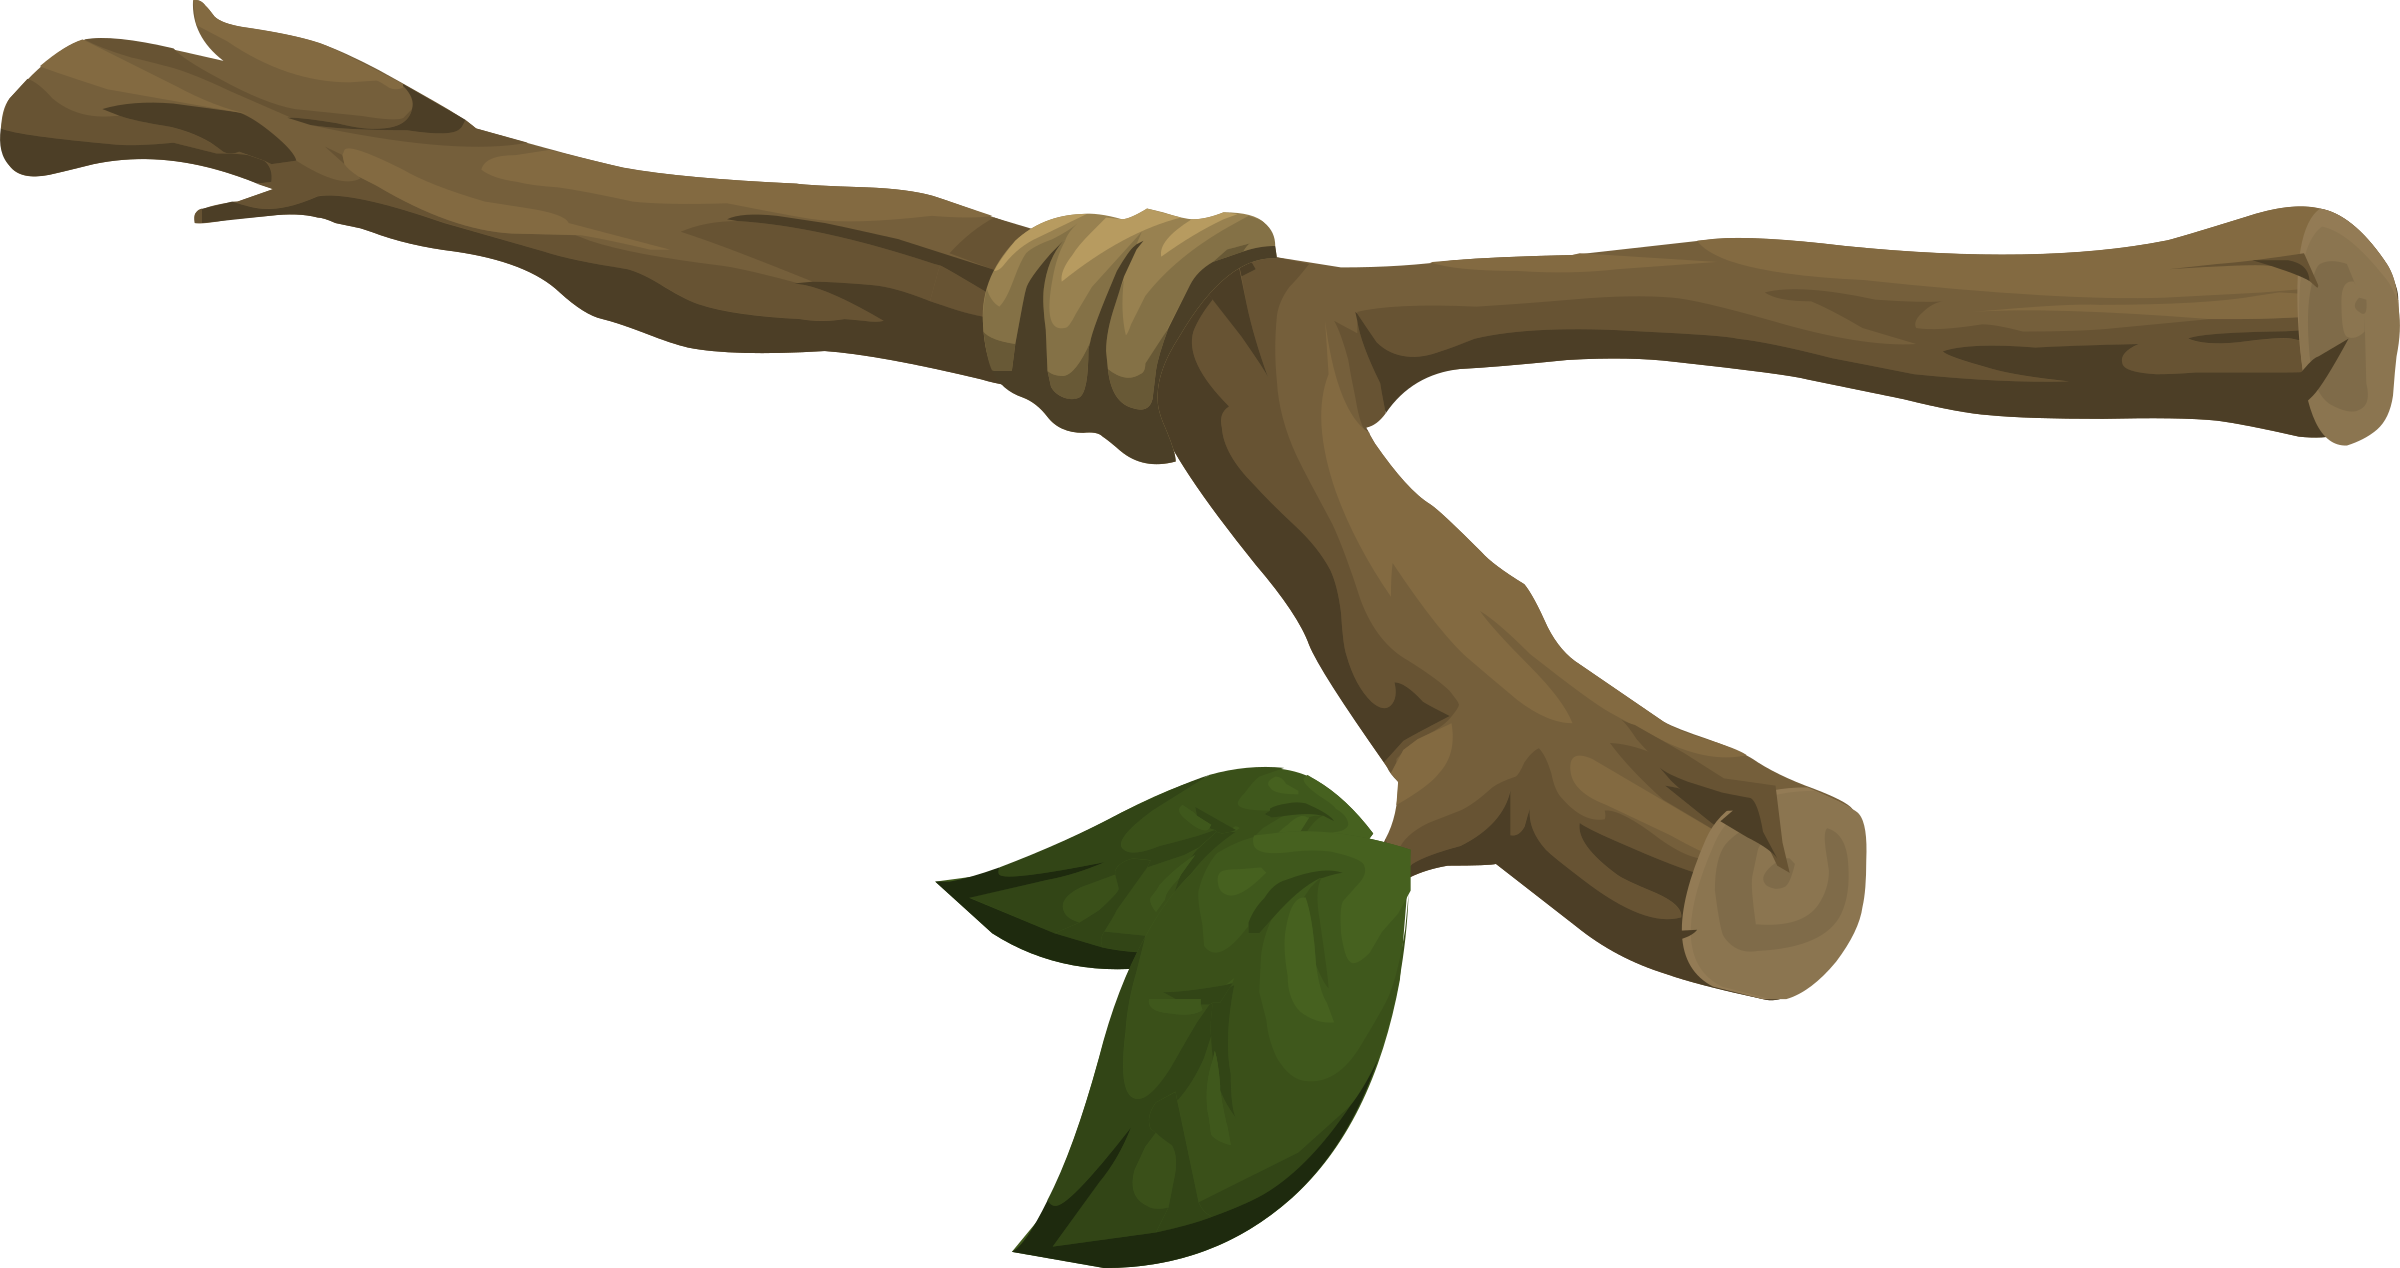 Free Twig Cliparts, Download Free Clip Art, Free Clip Art on.